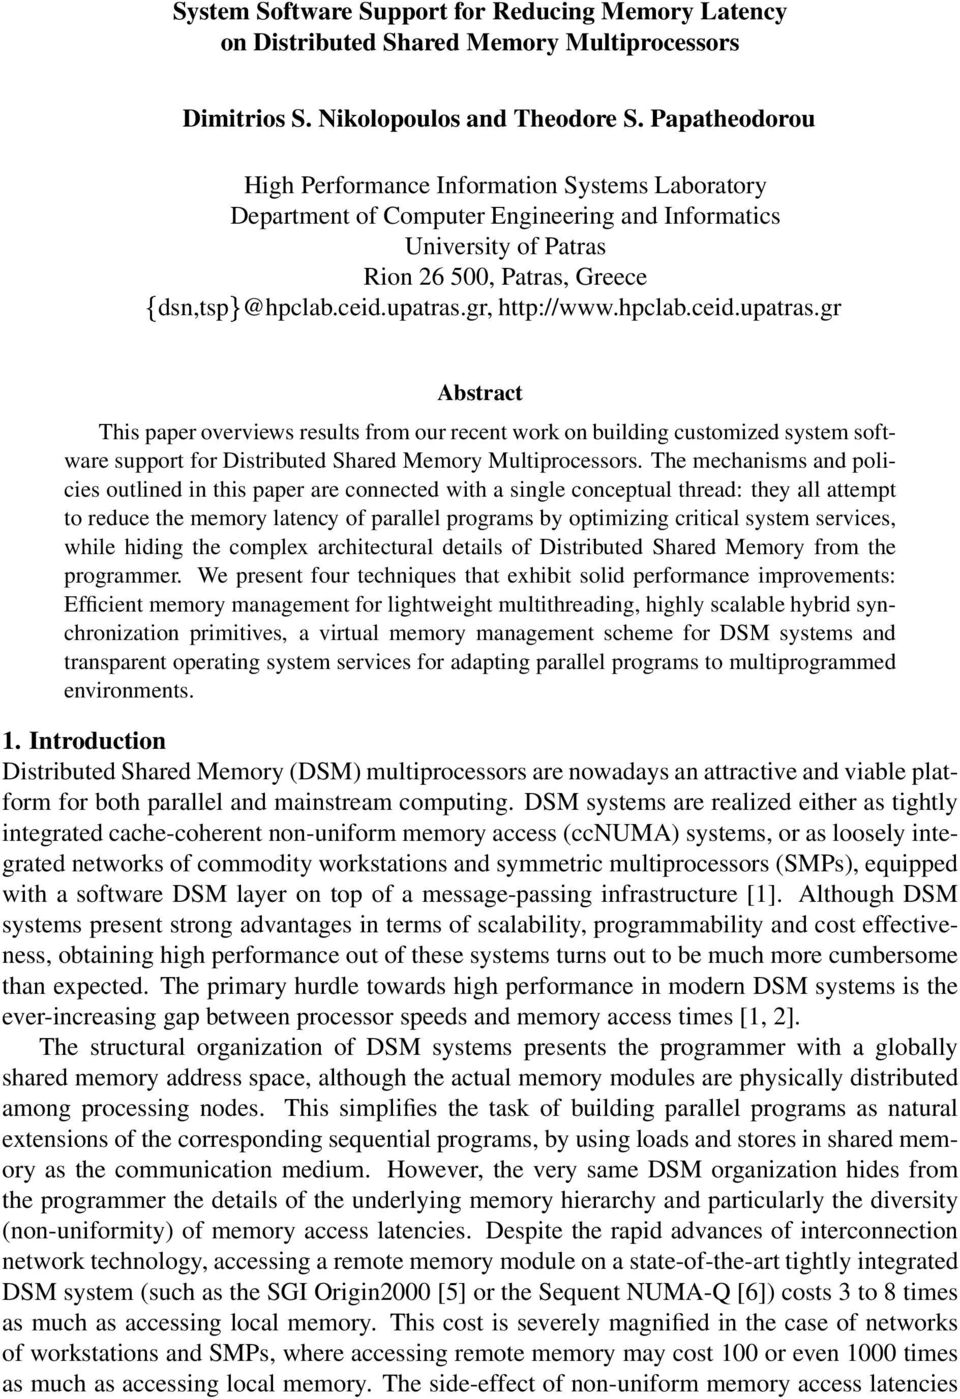 gr, http://www.hpclab.ceid.upatras.gr Abstract This paper overviews results from our recent work on building customized system software support for Distributed Shared Memory Multiprocessors.